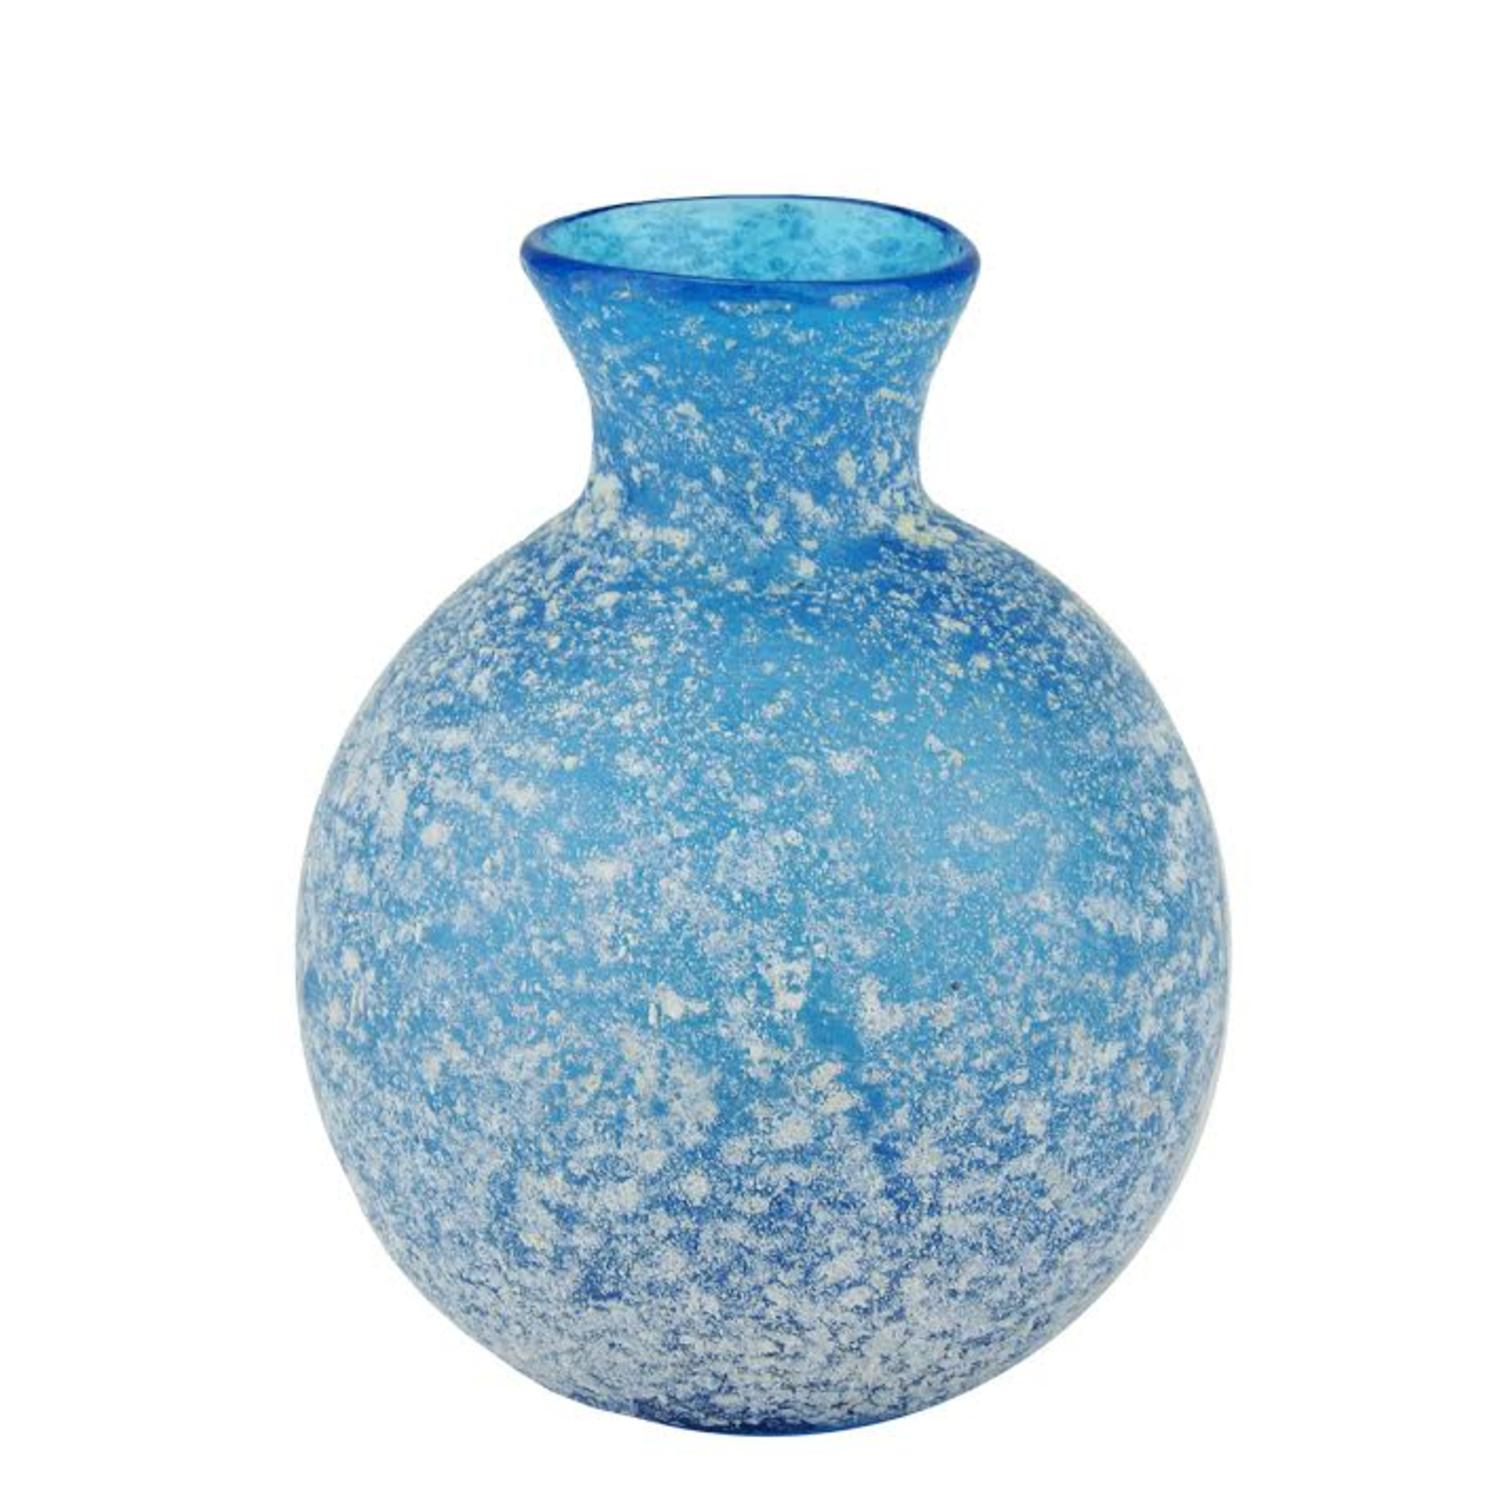 "4.25"" Botanic Beauty Decorative Blue and White Speckled Glass Vase"